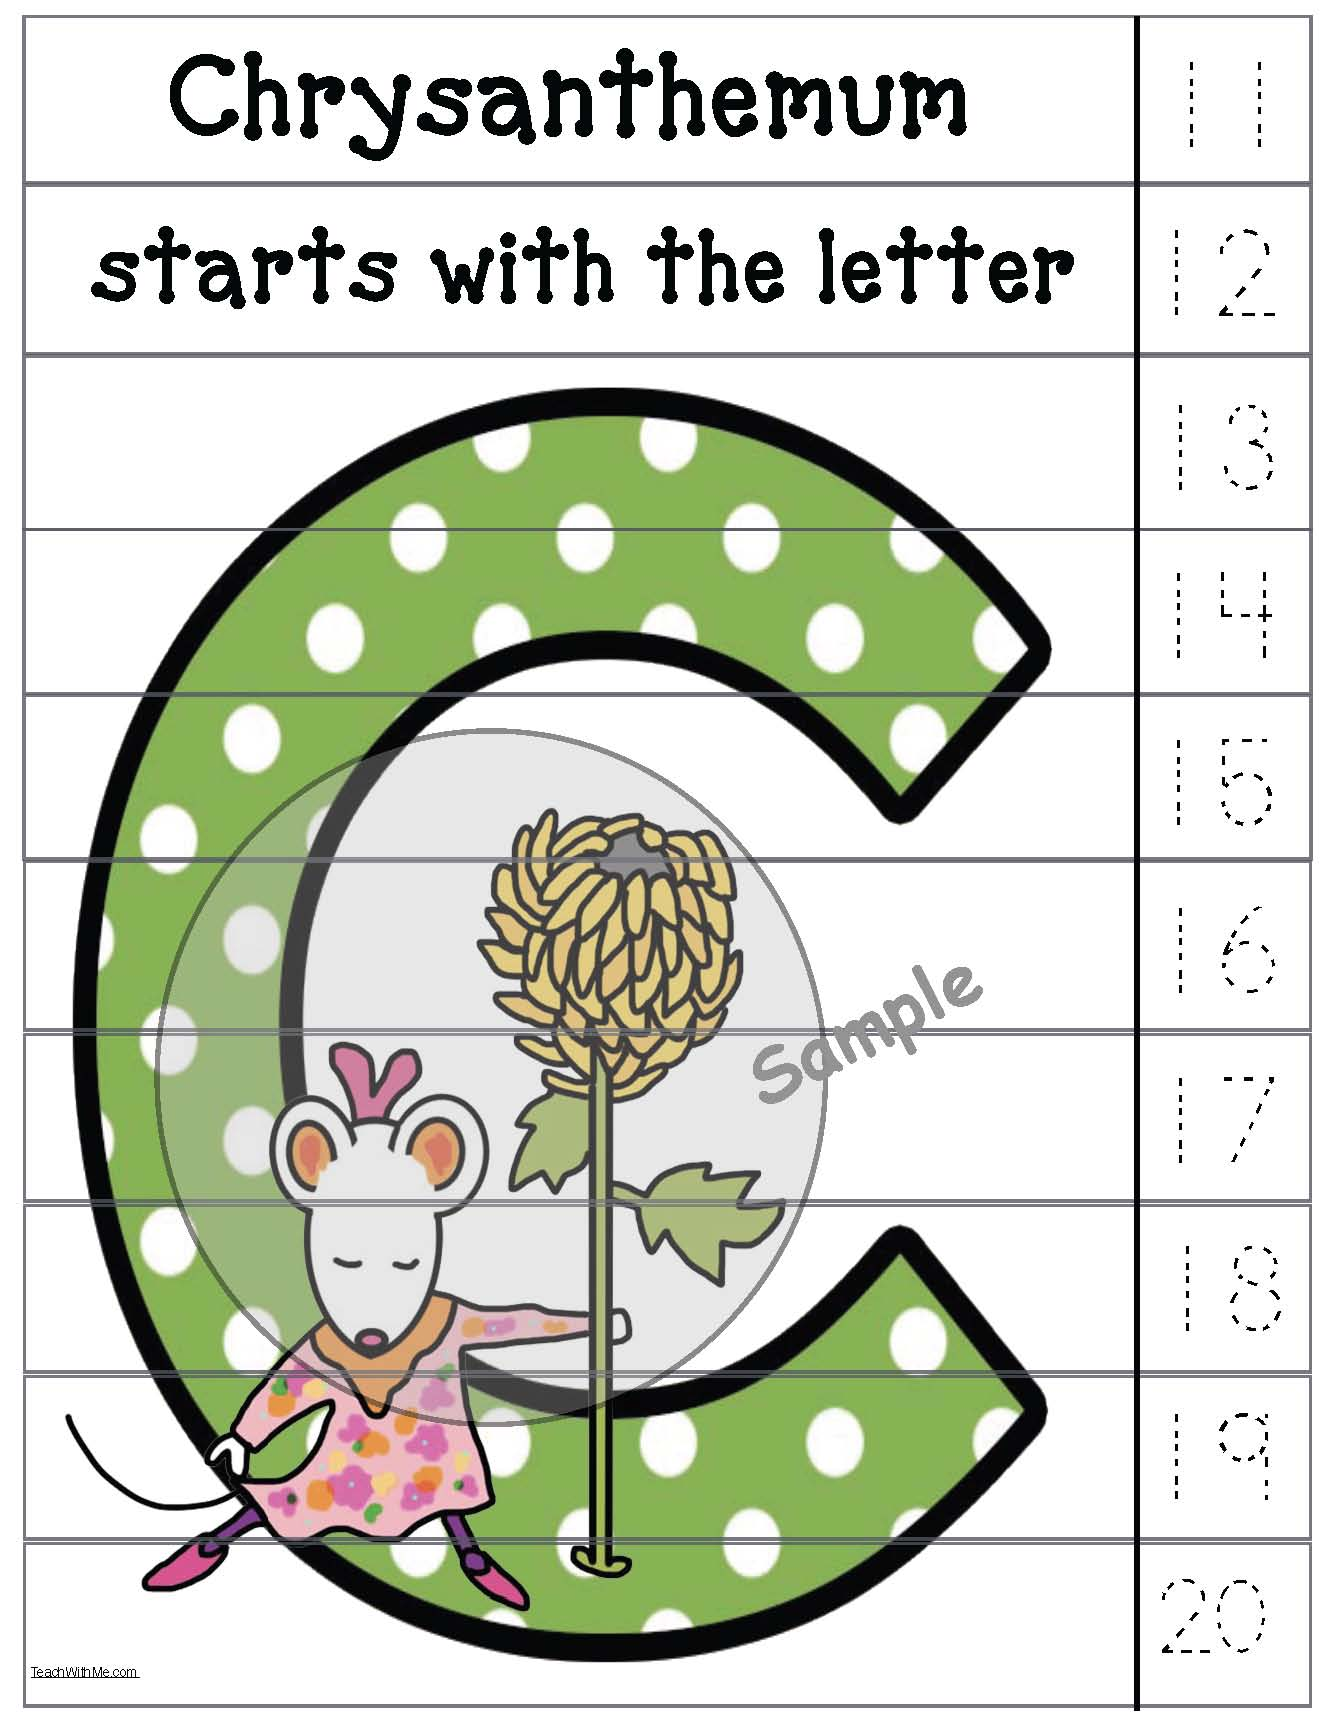 bucket filling ideas, bucket filling ideas, chrysanthemum activities, bucket filling activities, chrysanthemum crafts, skip counting by 10s, number puzzles, alphabet crafts, alphabet puzzles, alphabet games, alphabet centers